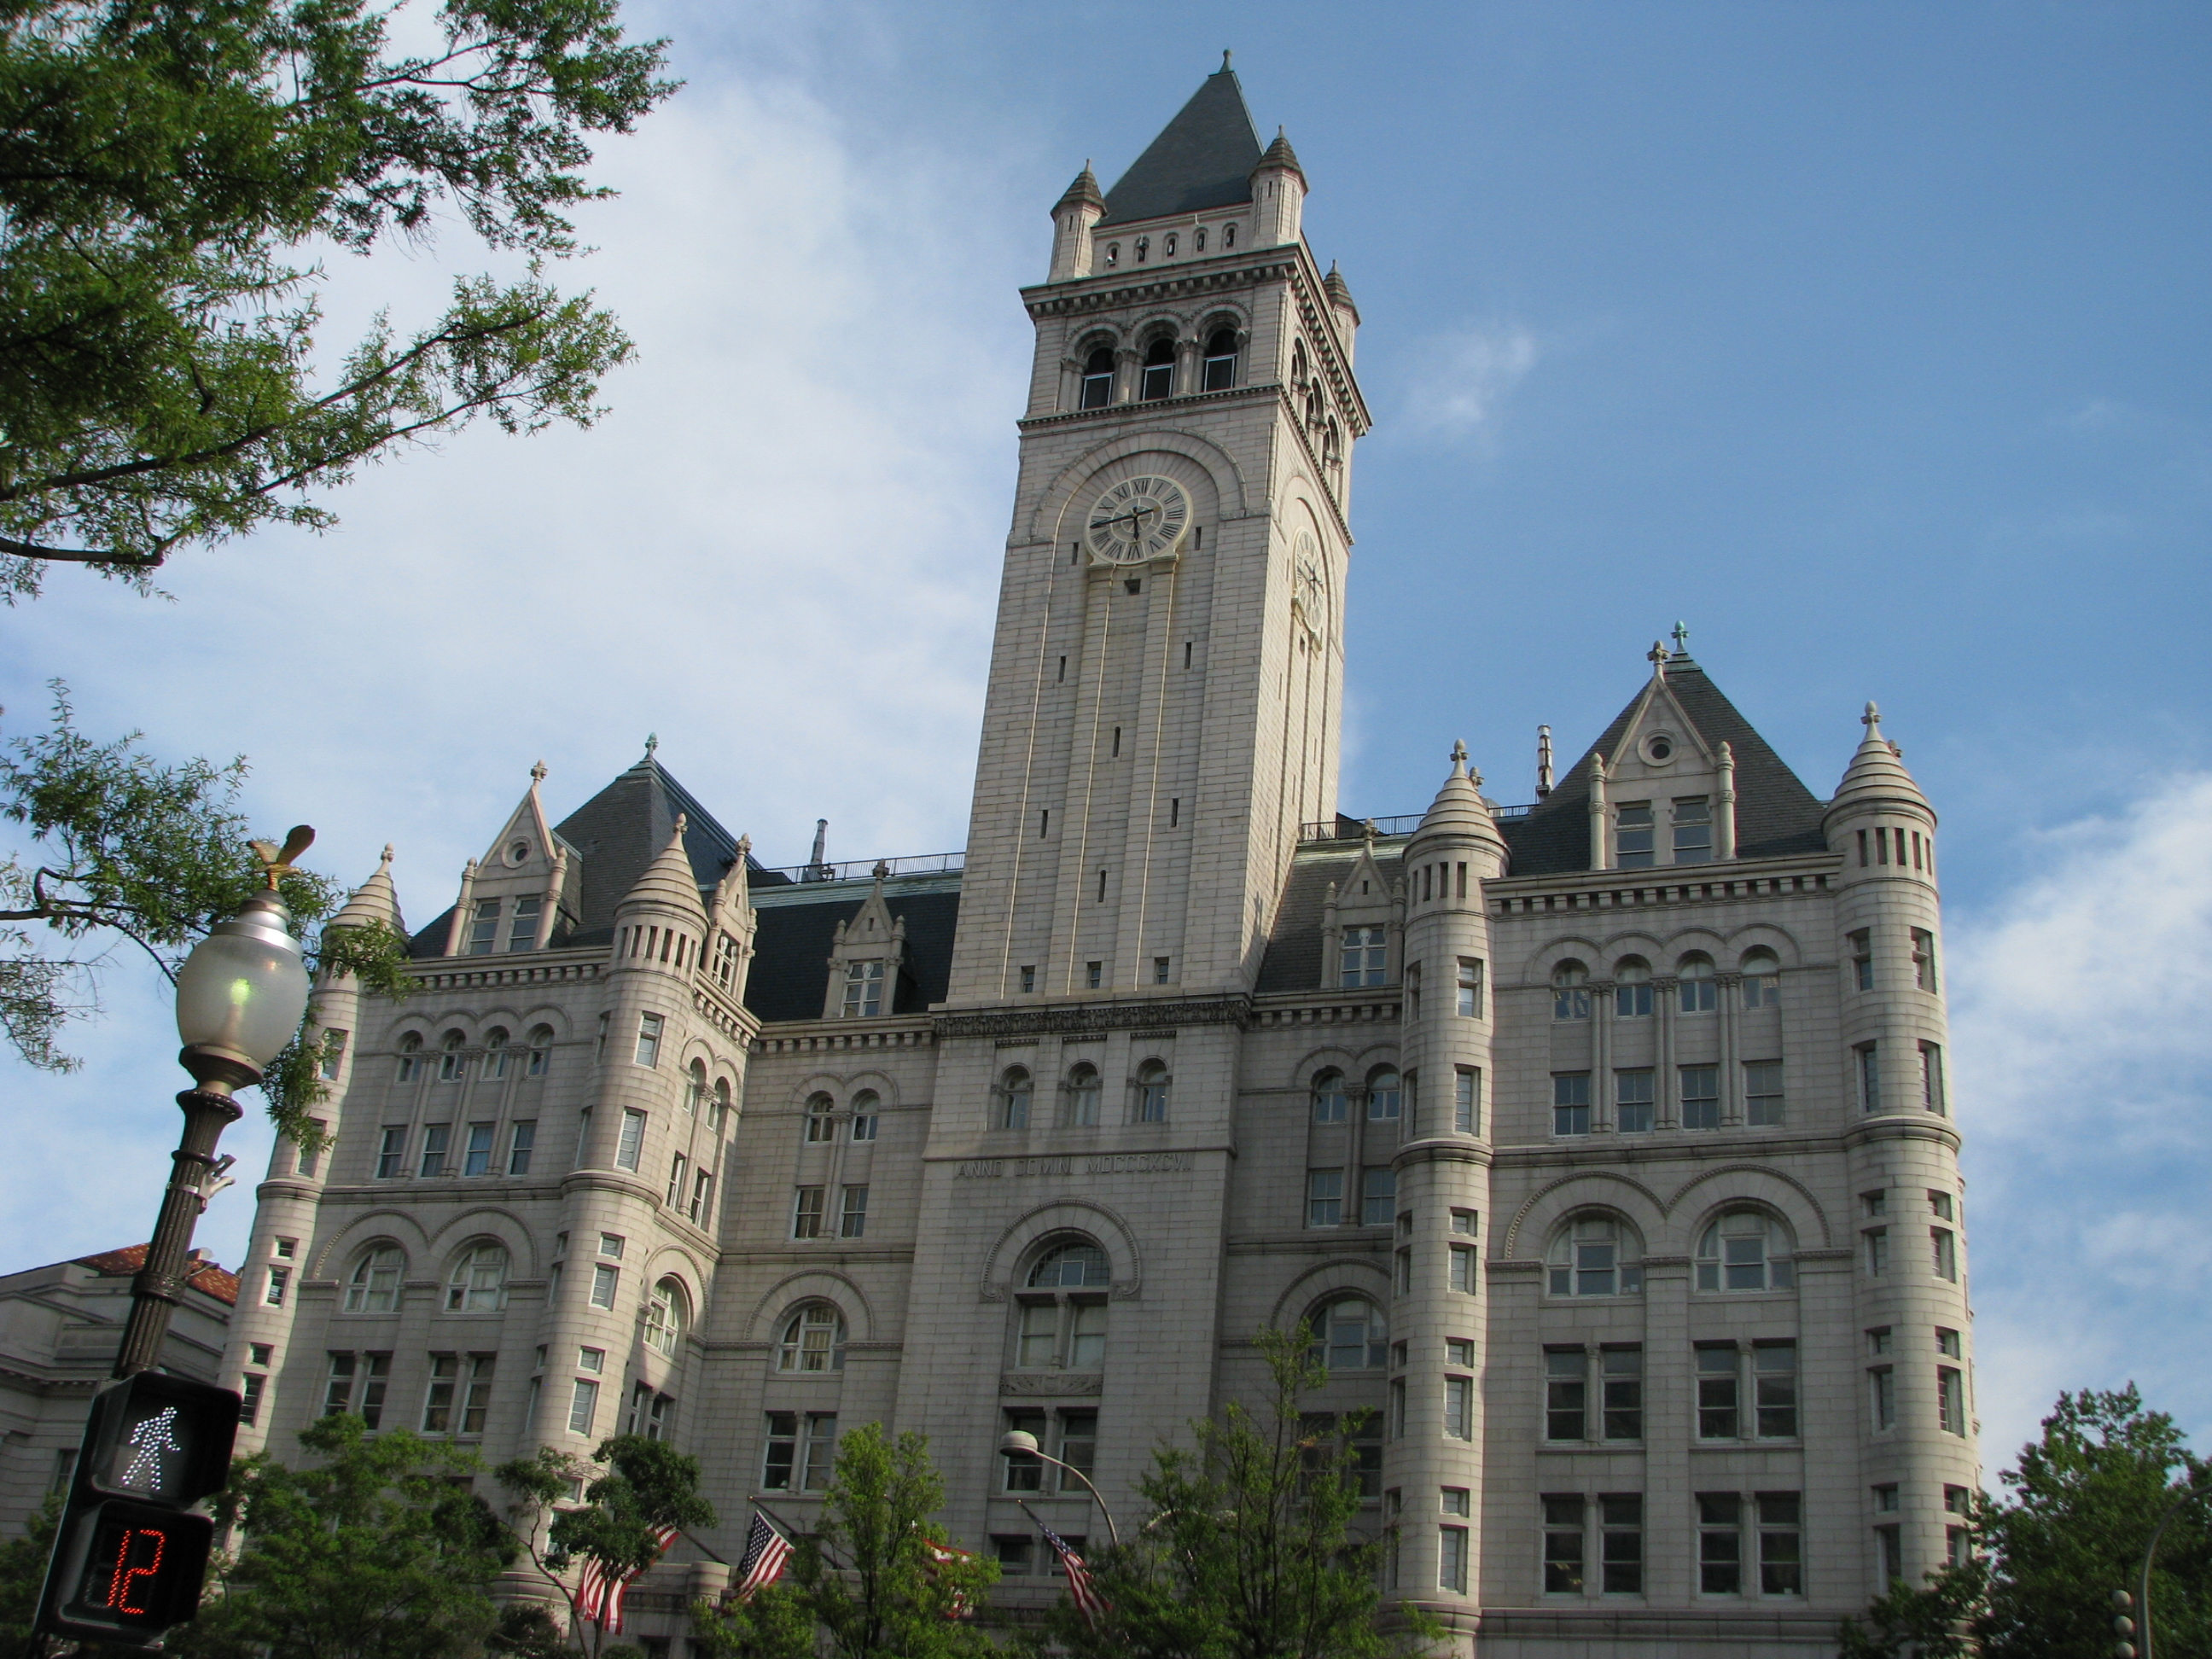 File:DC old post office (1).JPG - Wikimedia Commons